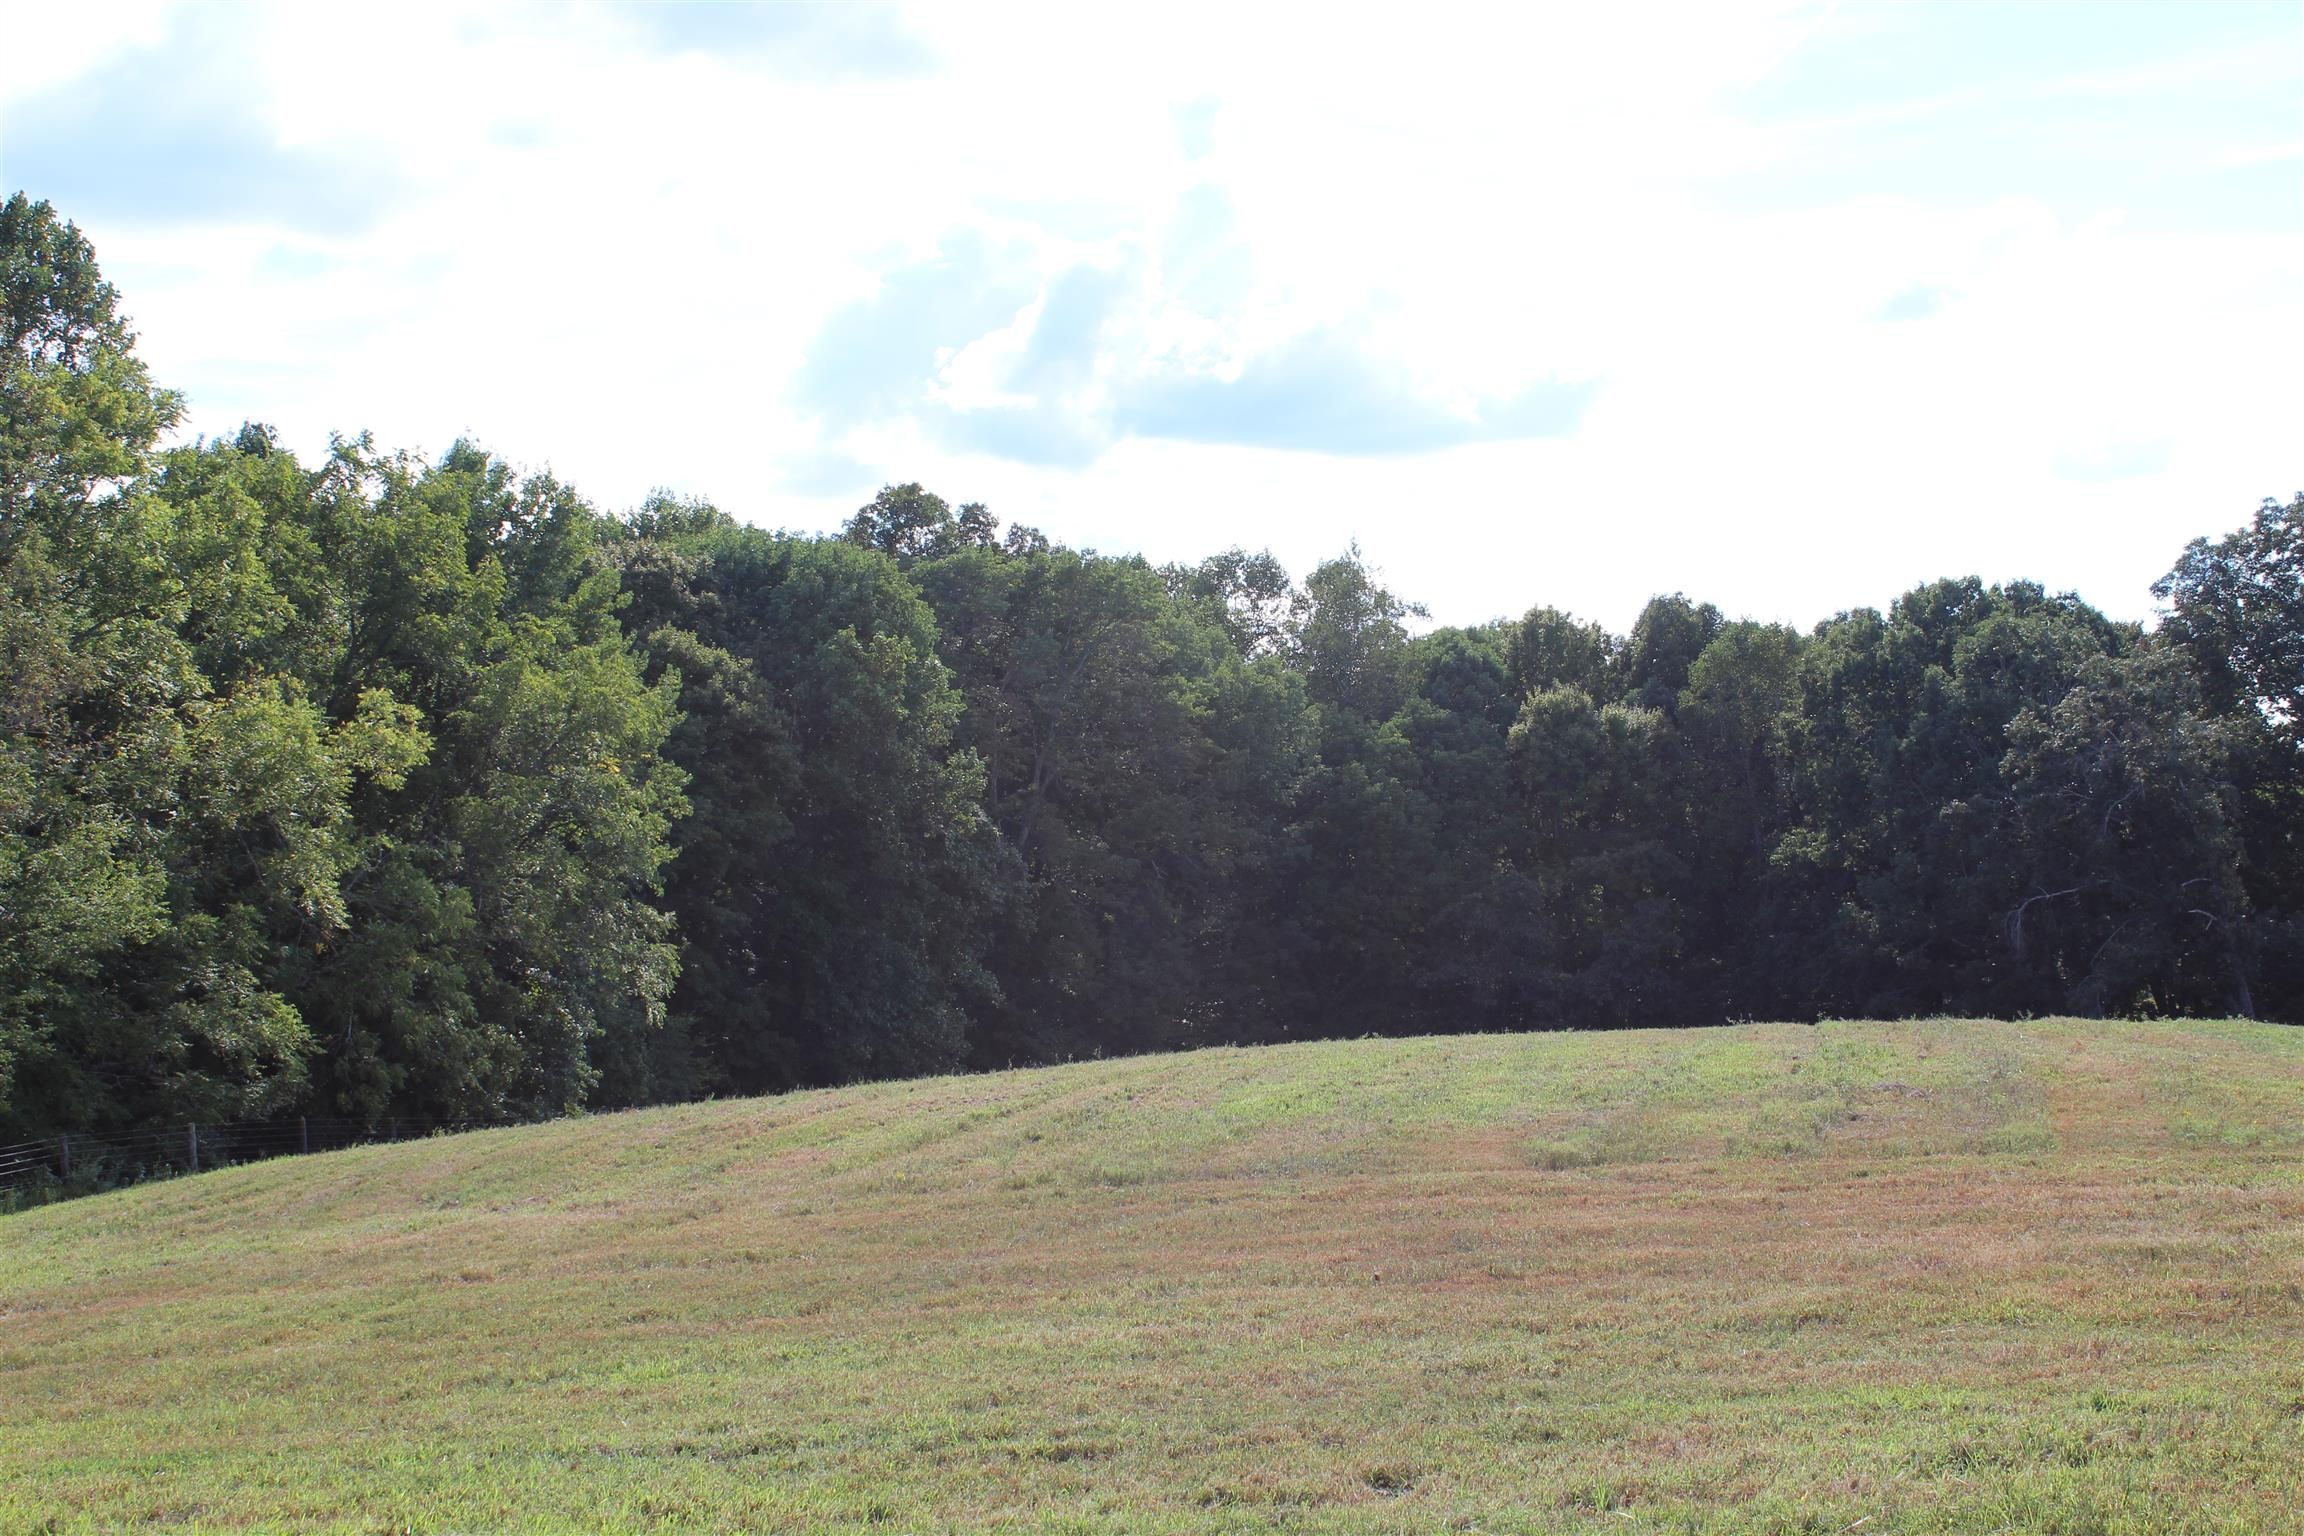 2 Hickory Point Rd (Lot 2), Clarksville, TN 37043 - Clarksville, TN real estate listing